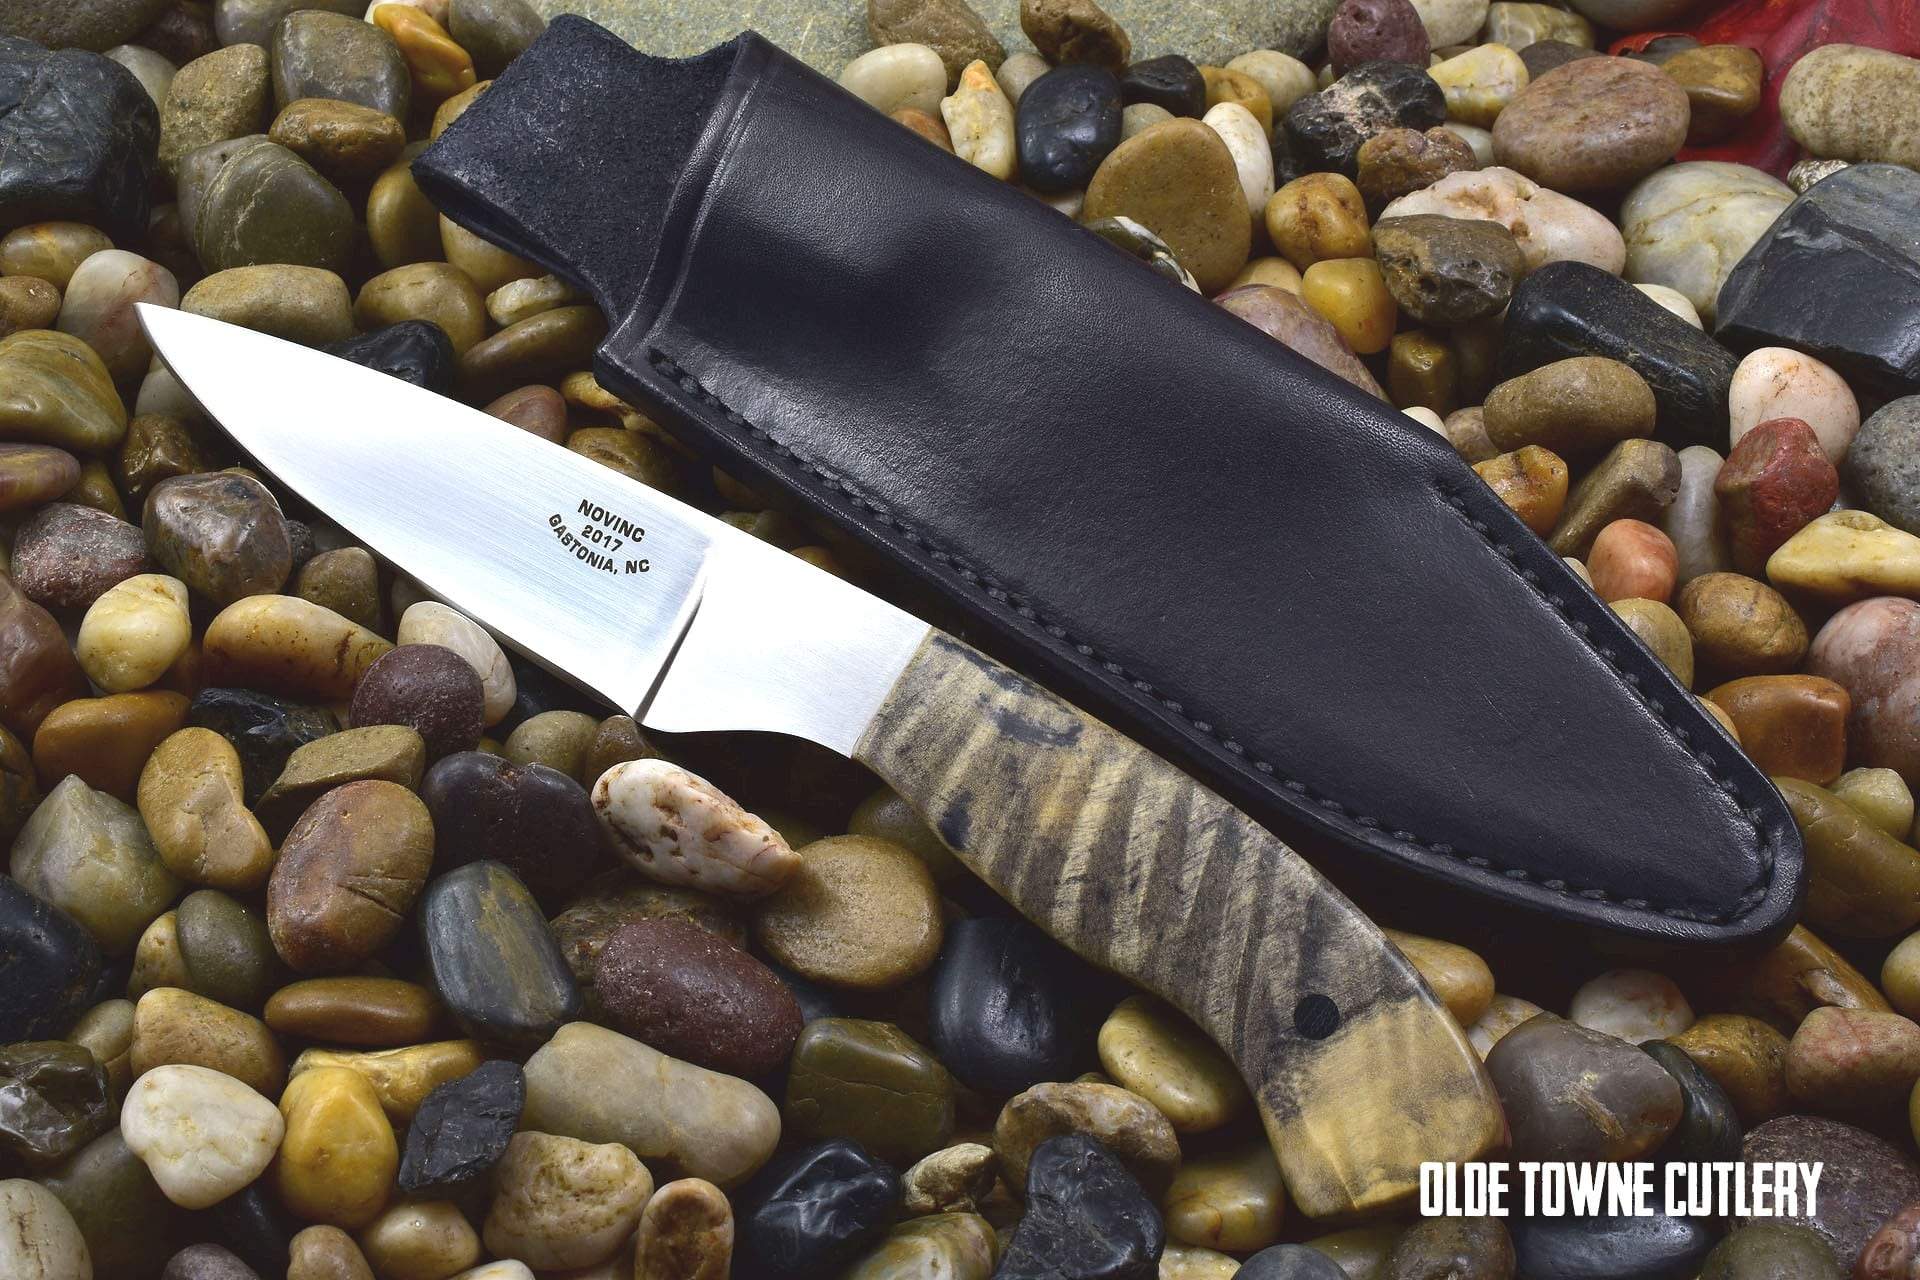 Novinc Knives Utility in Buckeye 2017 Model (C)